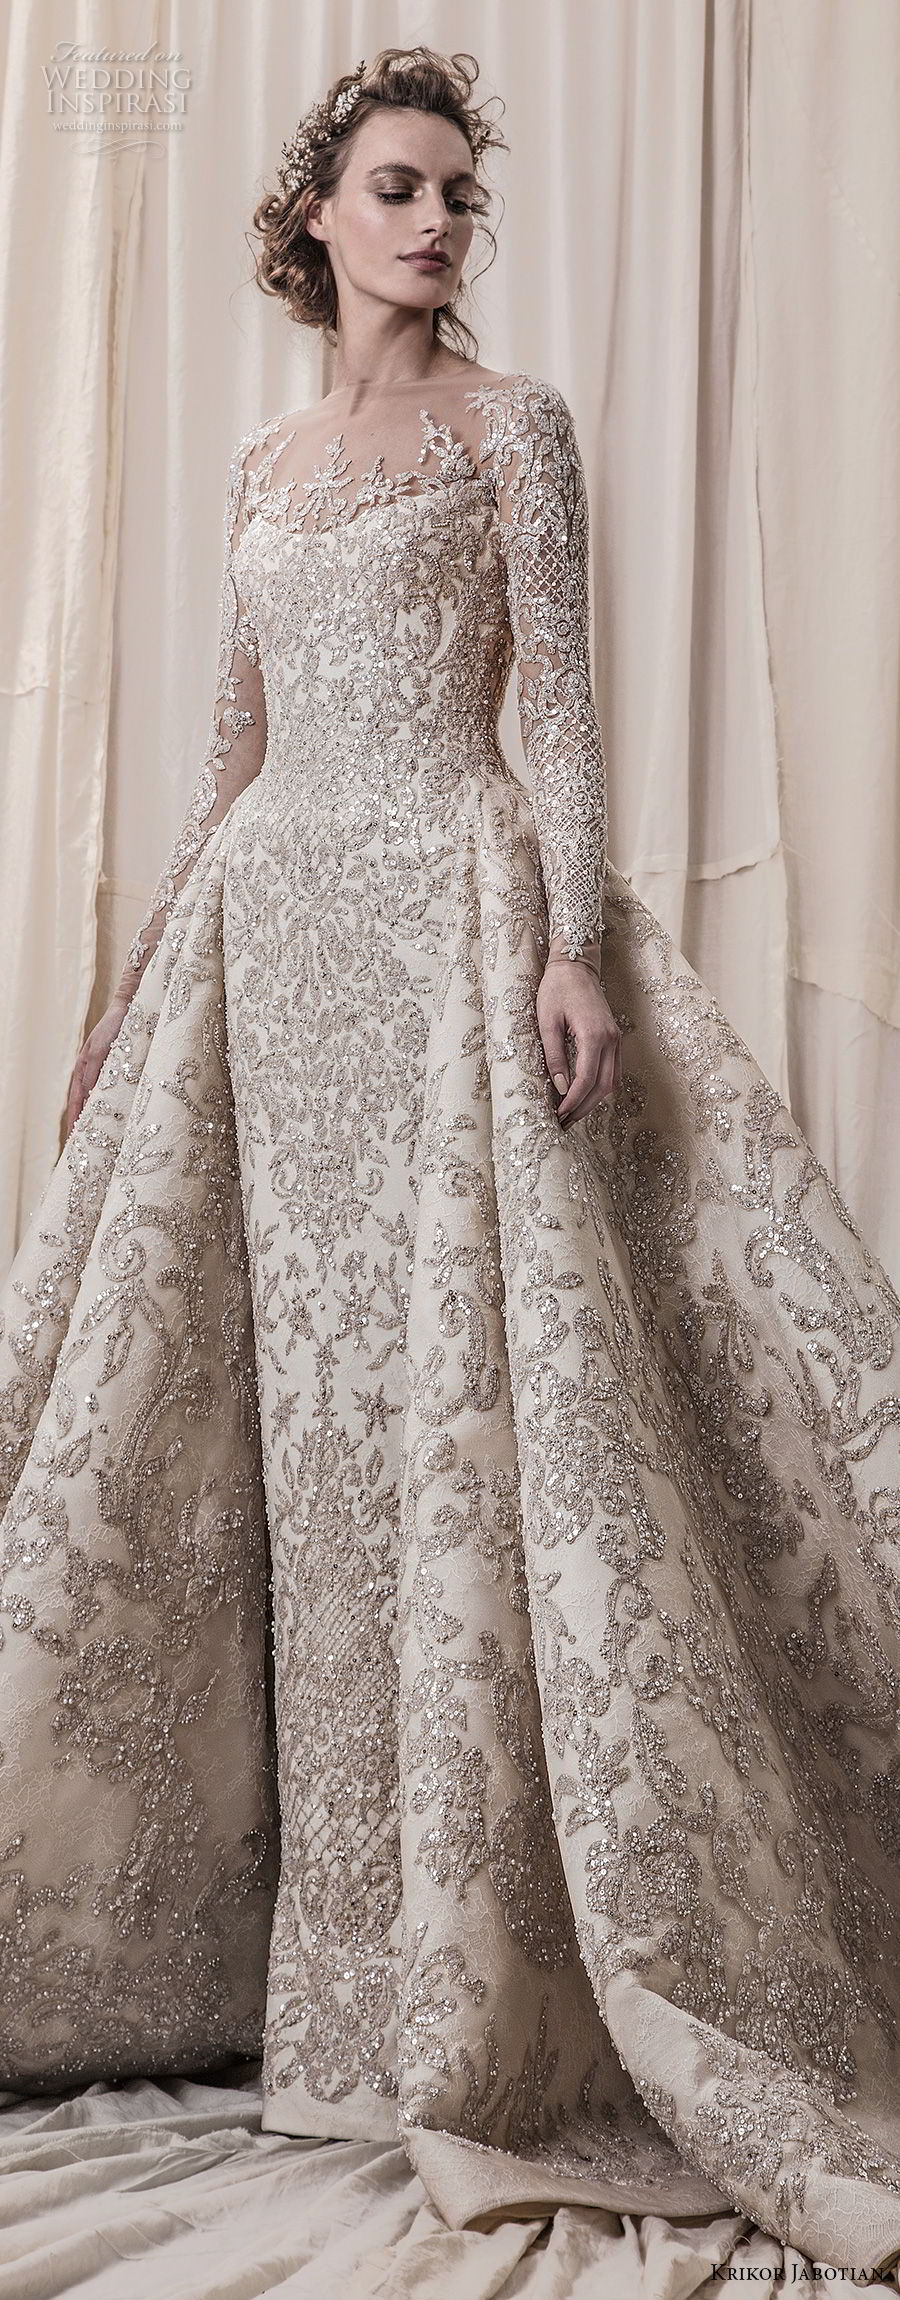 krikor jabotian spring 2018 bridal long sleeves scoop neck full embellishment glamorous princess ball gown a line wedding dress sheer button back royal train (04) lv